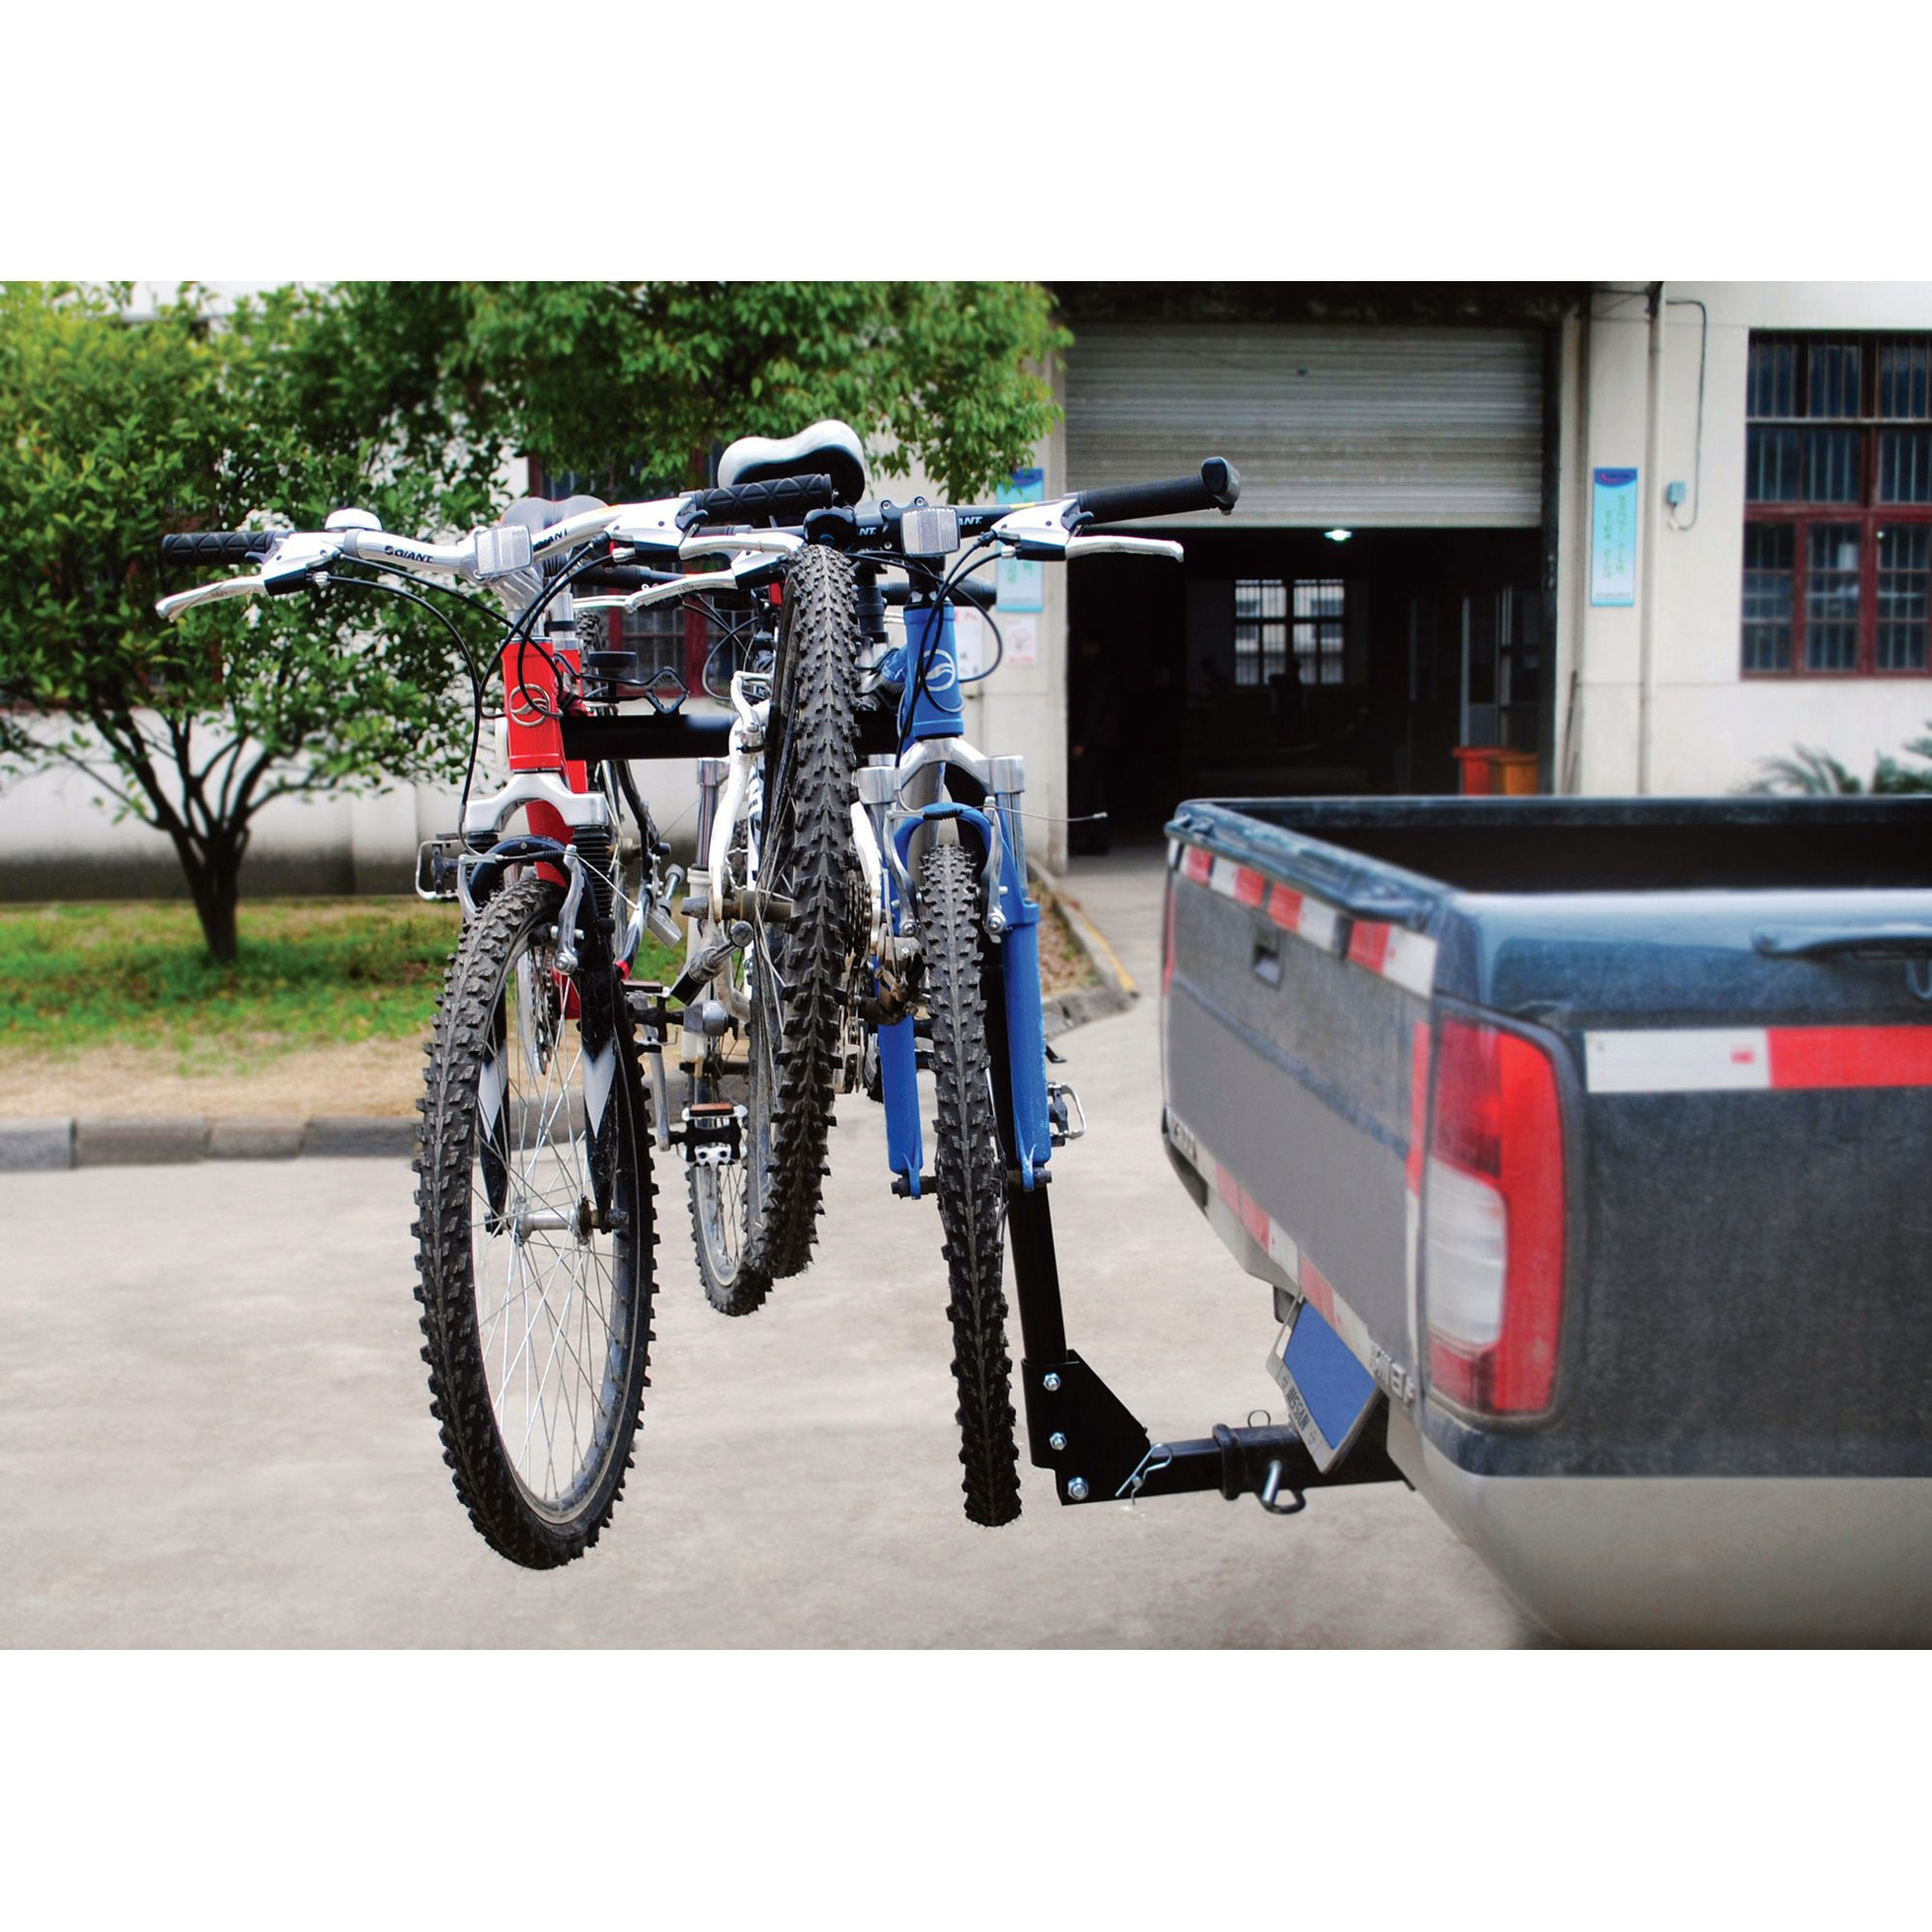 monolith mount duty state outdoor hitch double quik gear outdoors review heavy reviews ub carrier bike co bicycle on rack